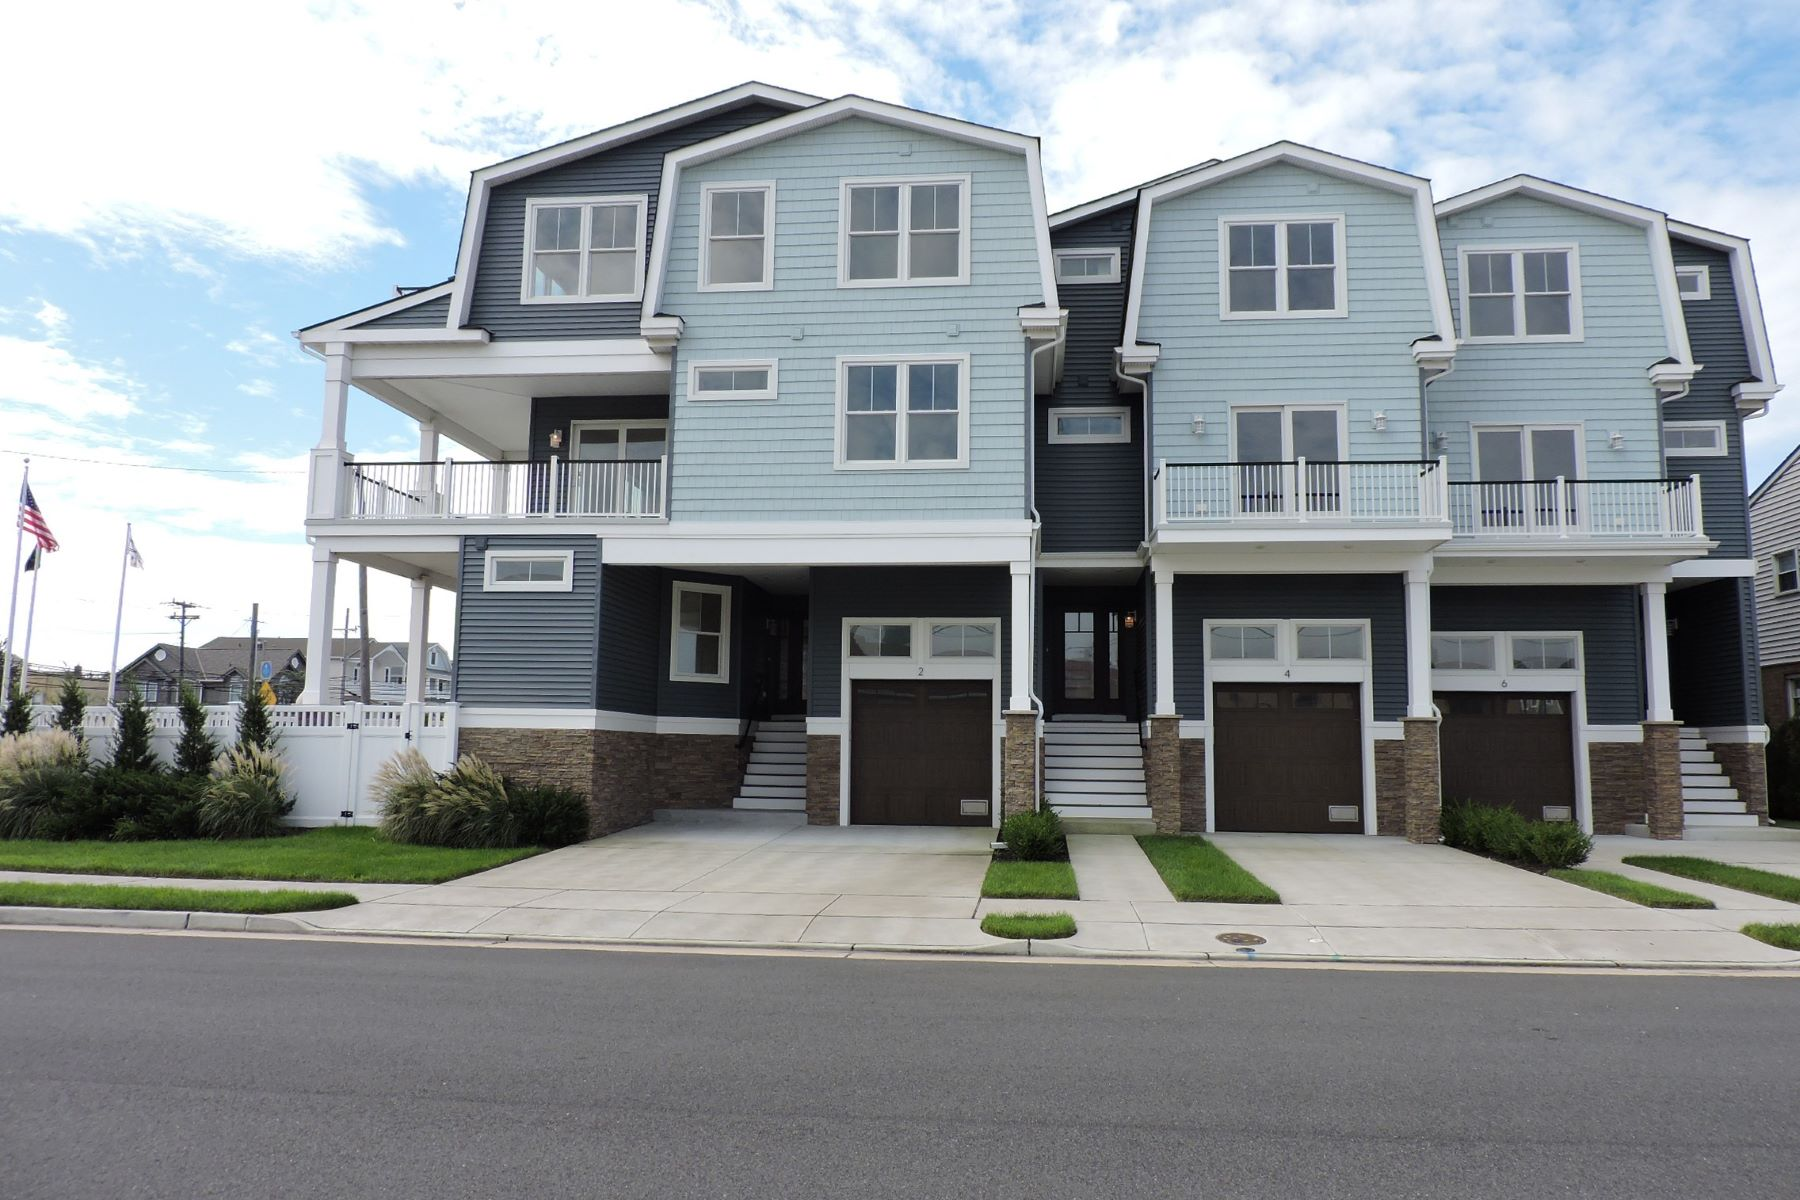 Townhouse for Sale at 4 N 28th Ave Longport, New Jersey 08403 United States